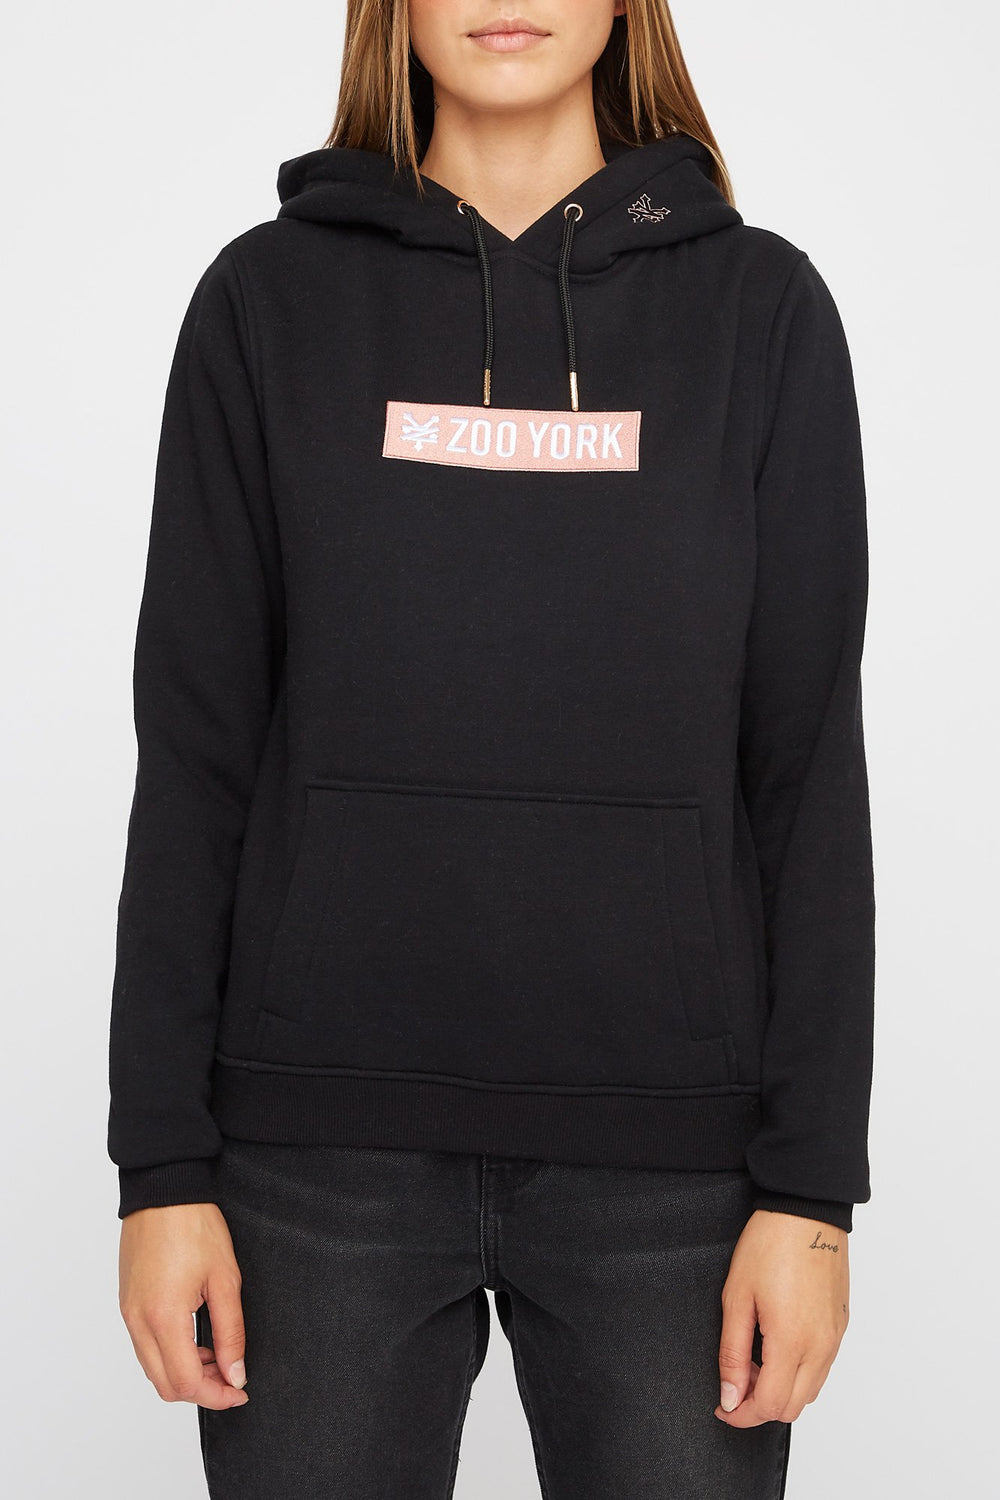 Zoo York Womens Box Logo Hoodie Black